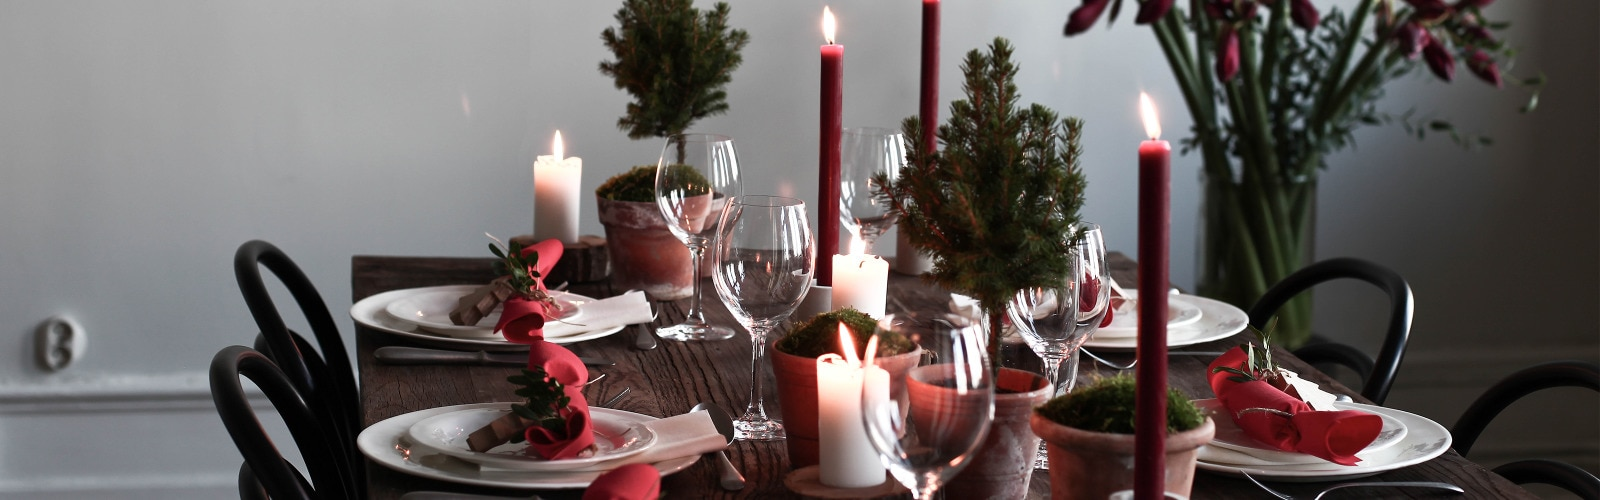 christmas_tablesetting_original.jpg